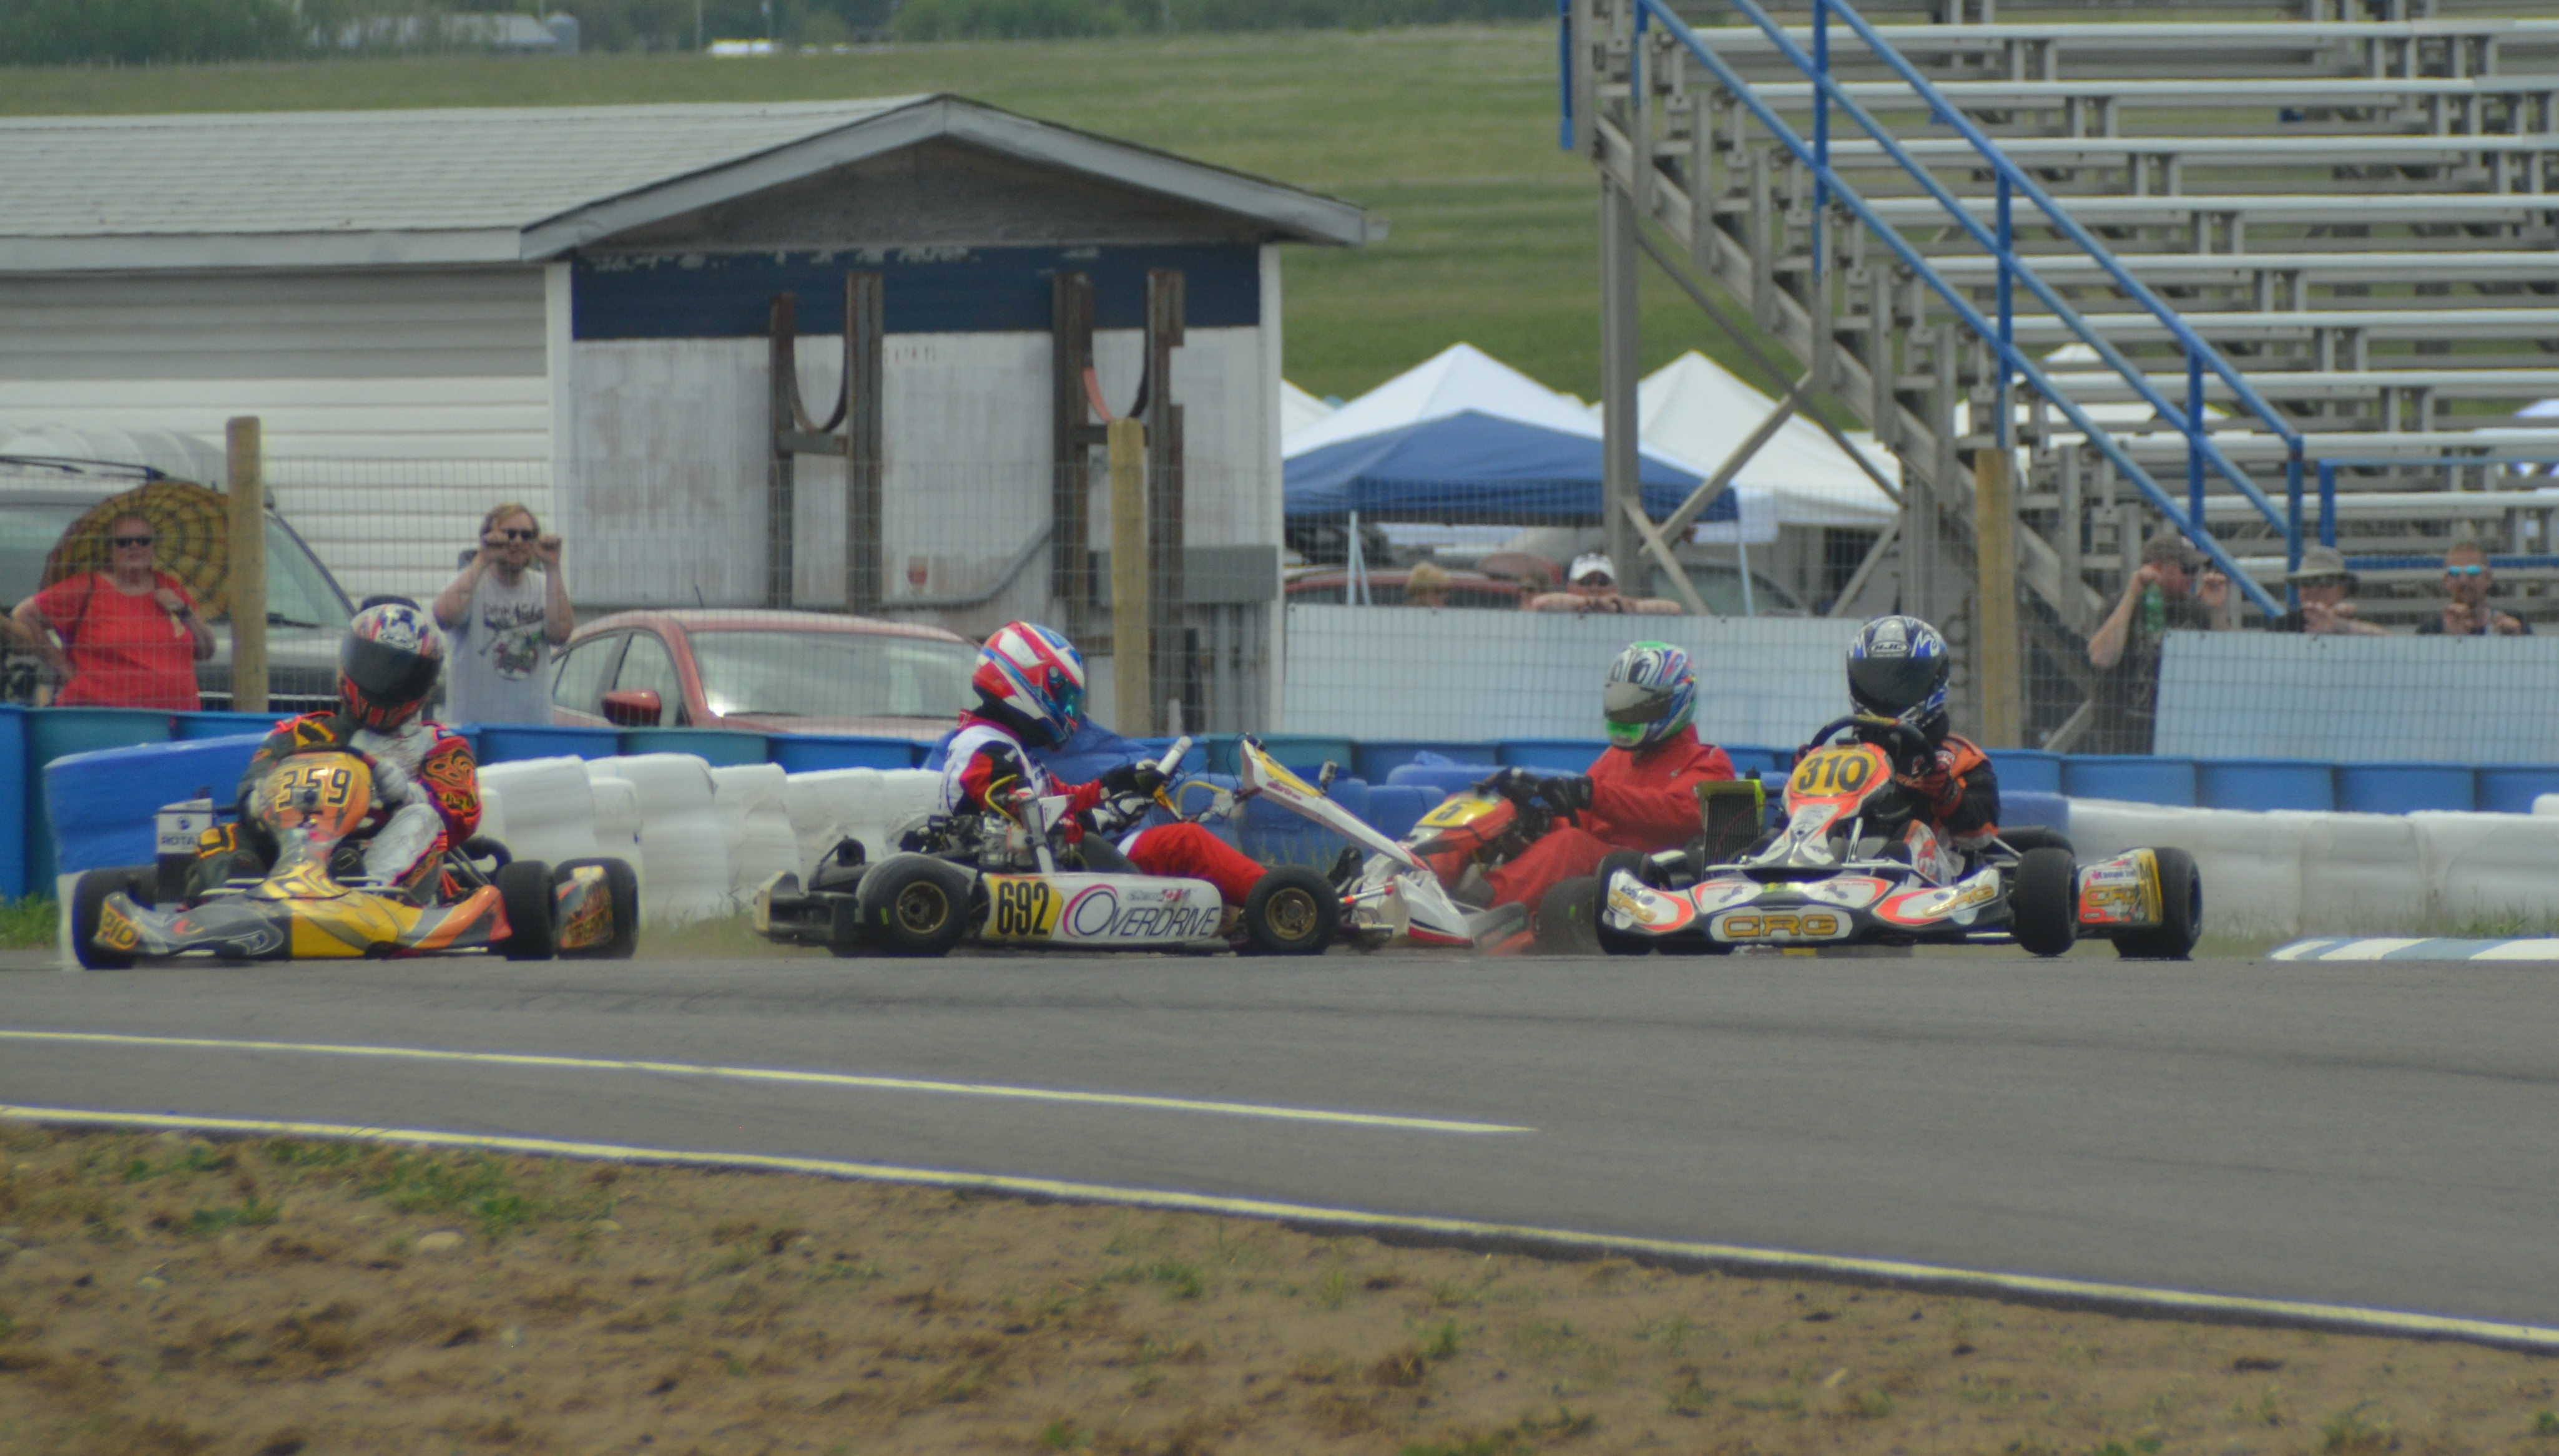 First Race Day For Calgary Kart Racing Club At New Track